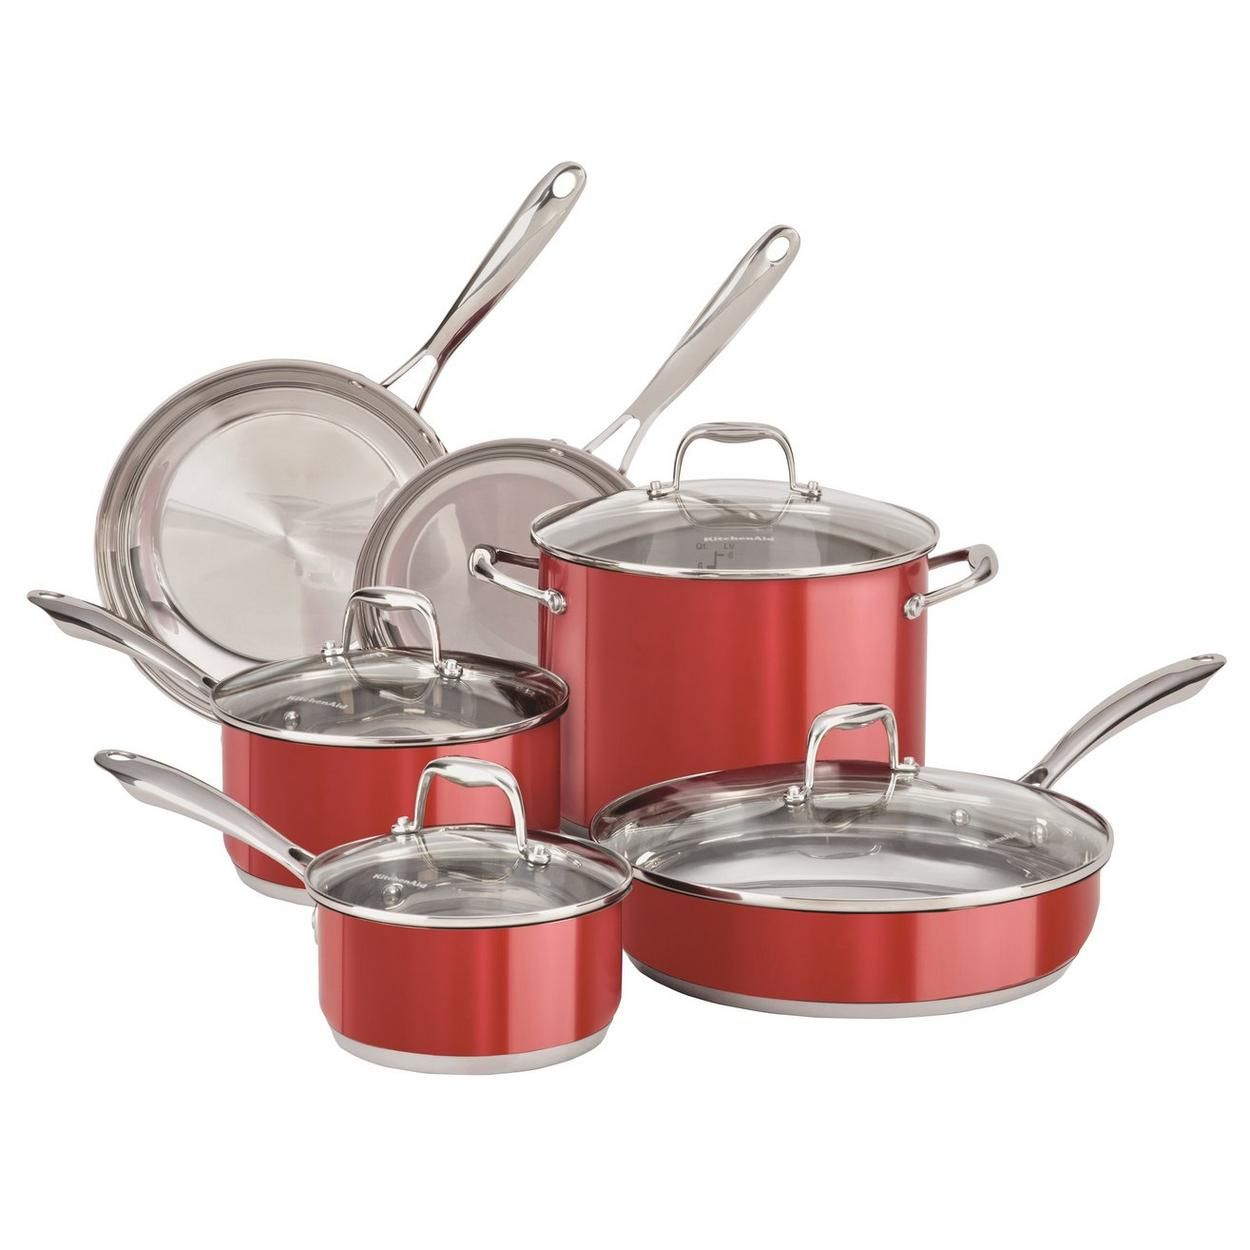 Cookware set red cookware set stainless steel